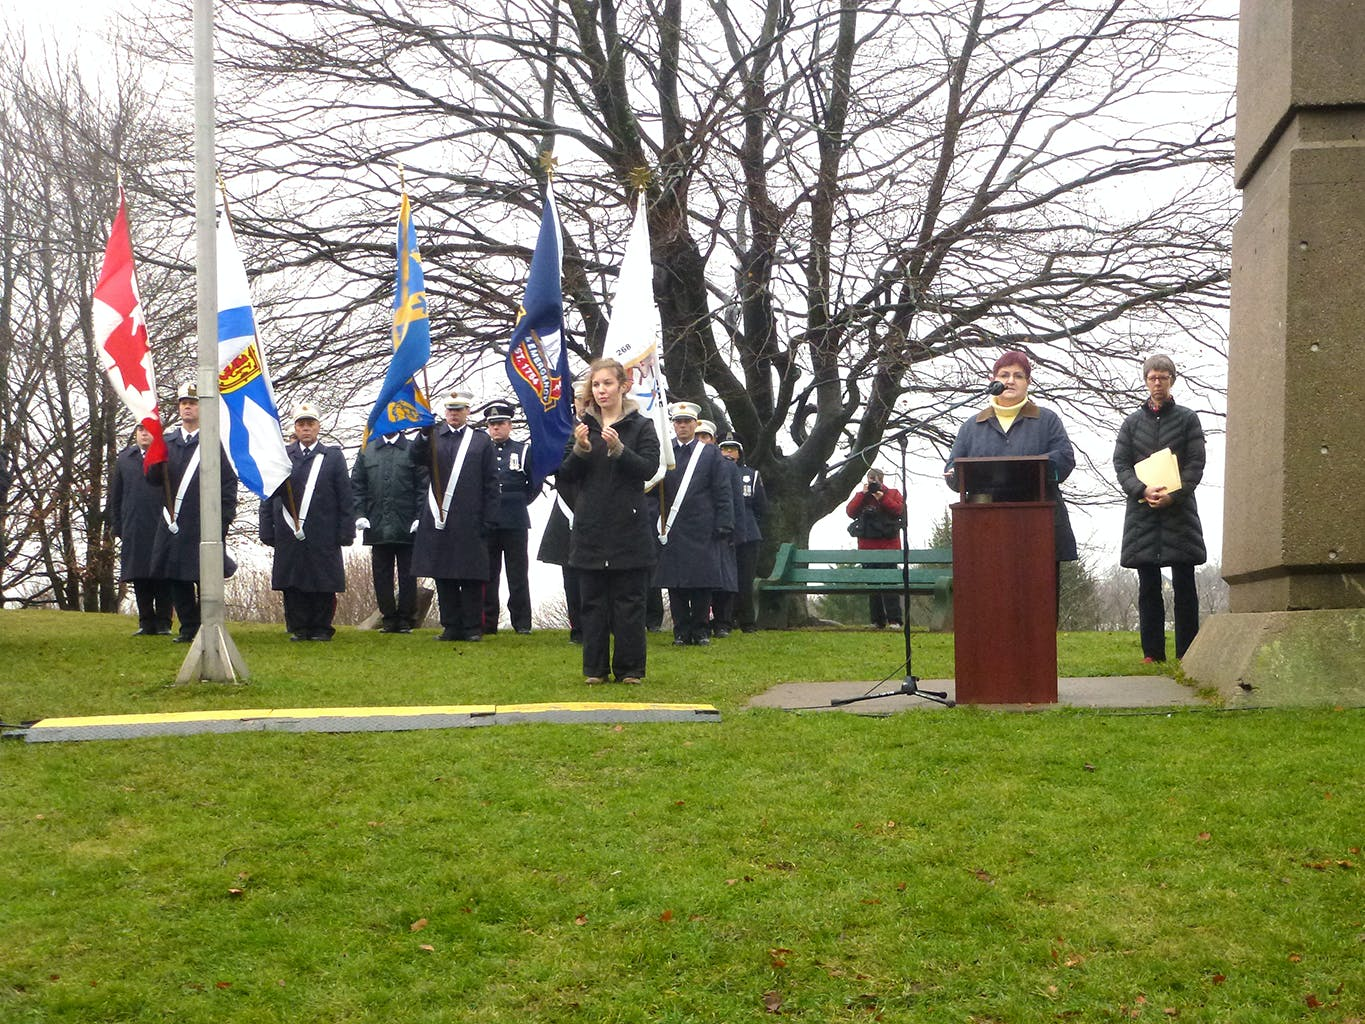 Halifax Explosion Memorial Ceremony